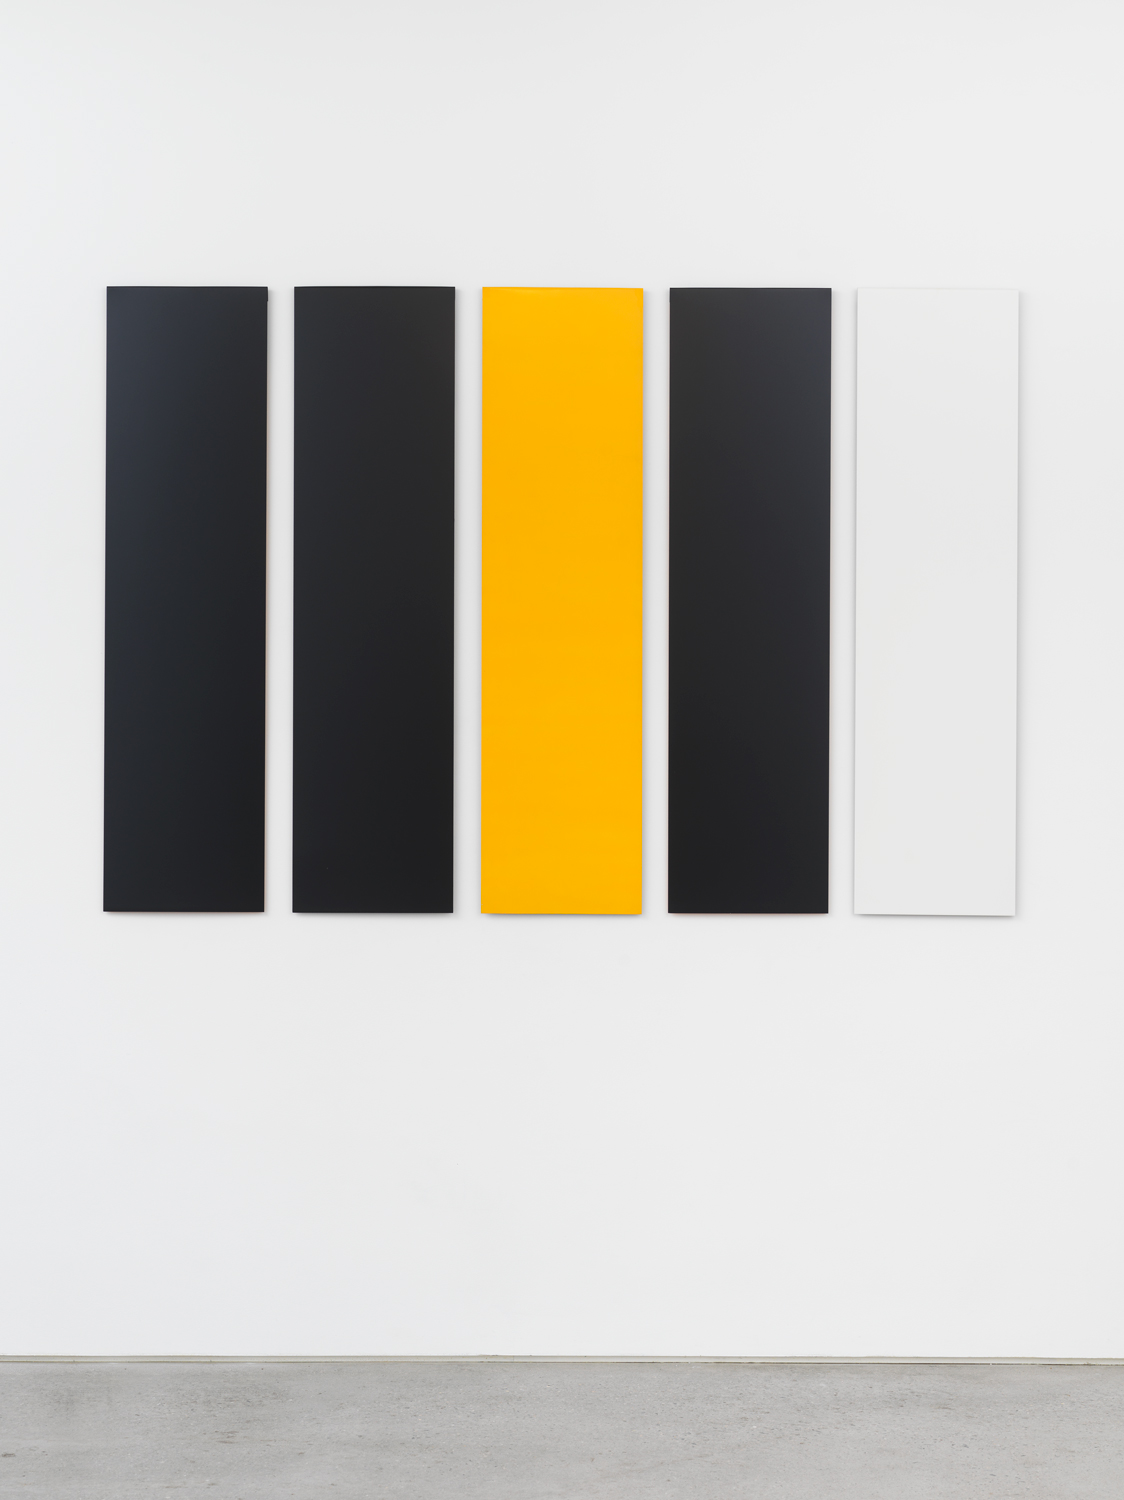 Don Dudley, Untitled (Aluminum Module), 1974/2019, Acrylic lacquer on aluminum, each module 46 3/4 x 12 in., overall 46.75 x 68 in.